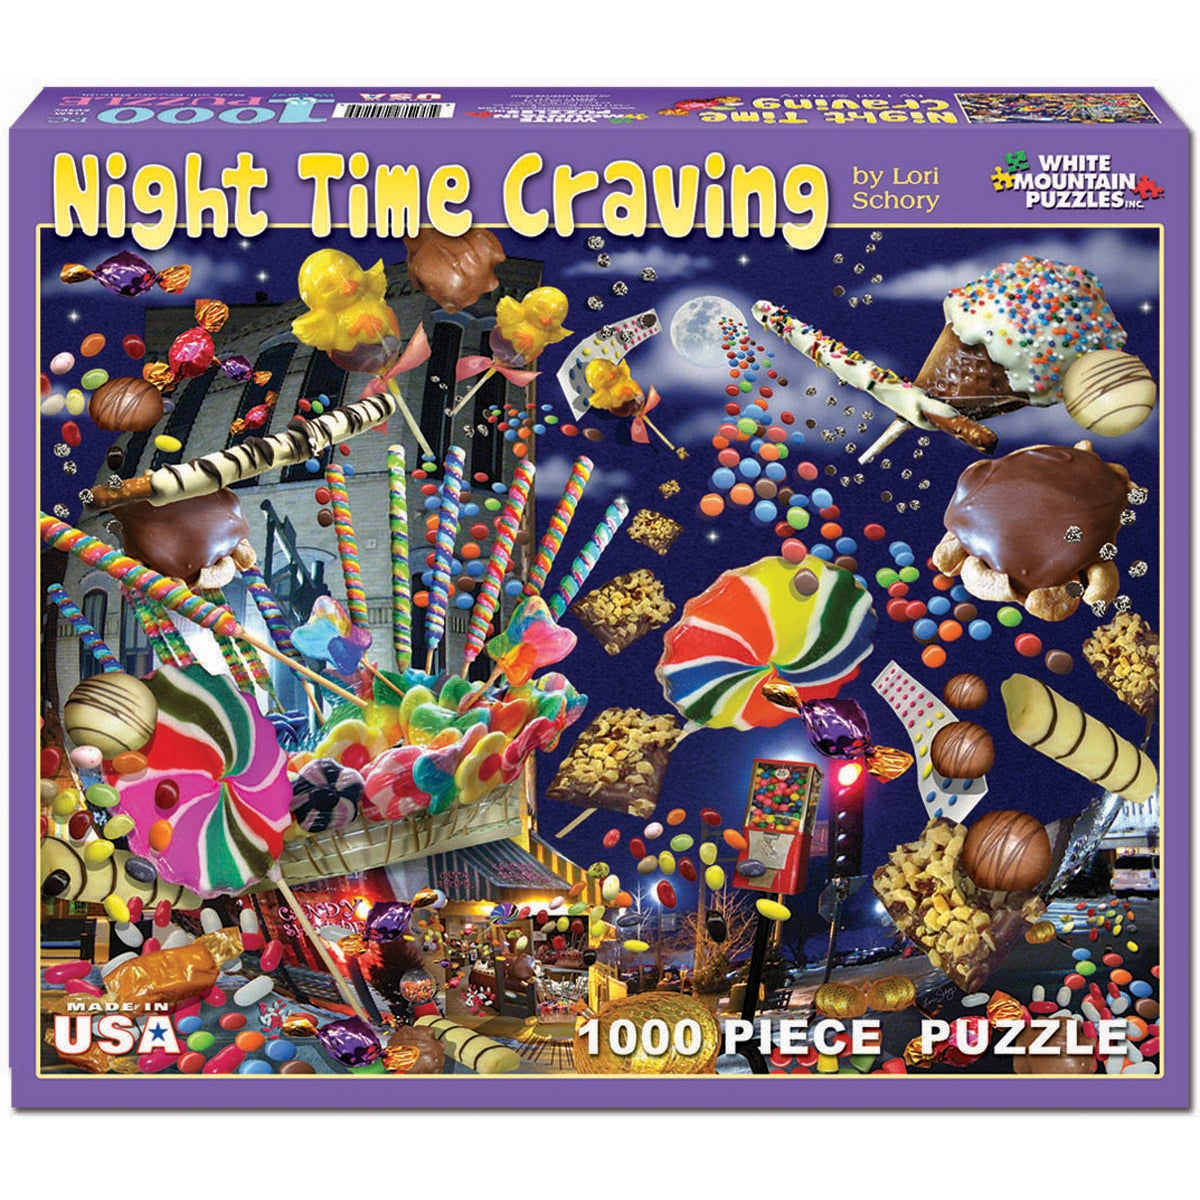 Night Time Craving 1000-piece Jigsaw Puzzle